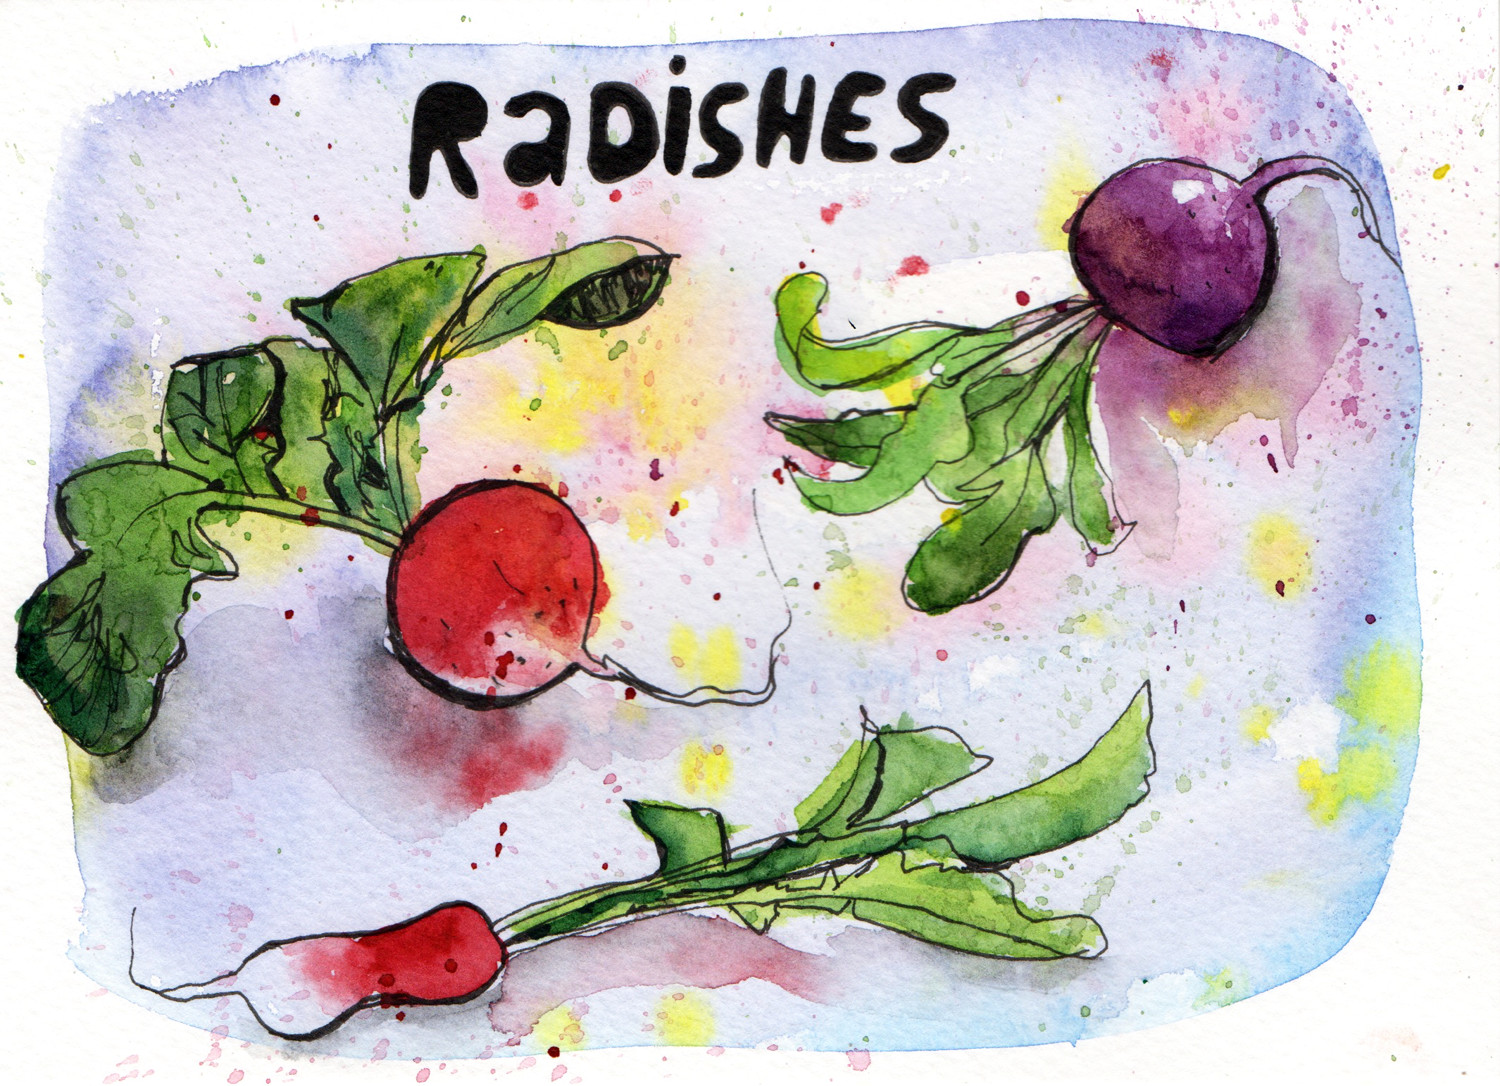 Daily Paintings by Sophie Peanut - Radishes in pen and watercolour